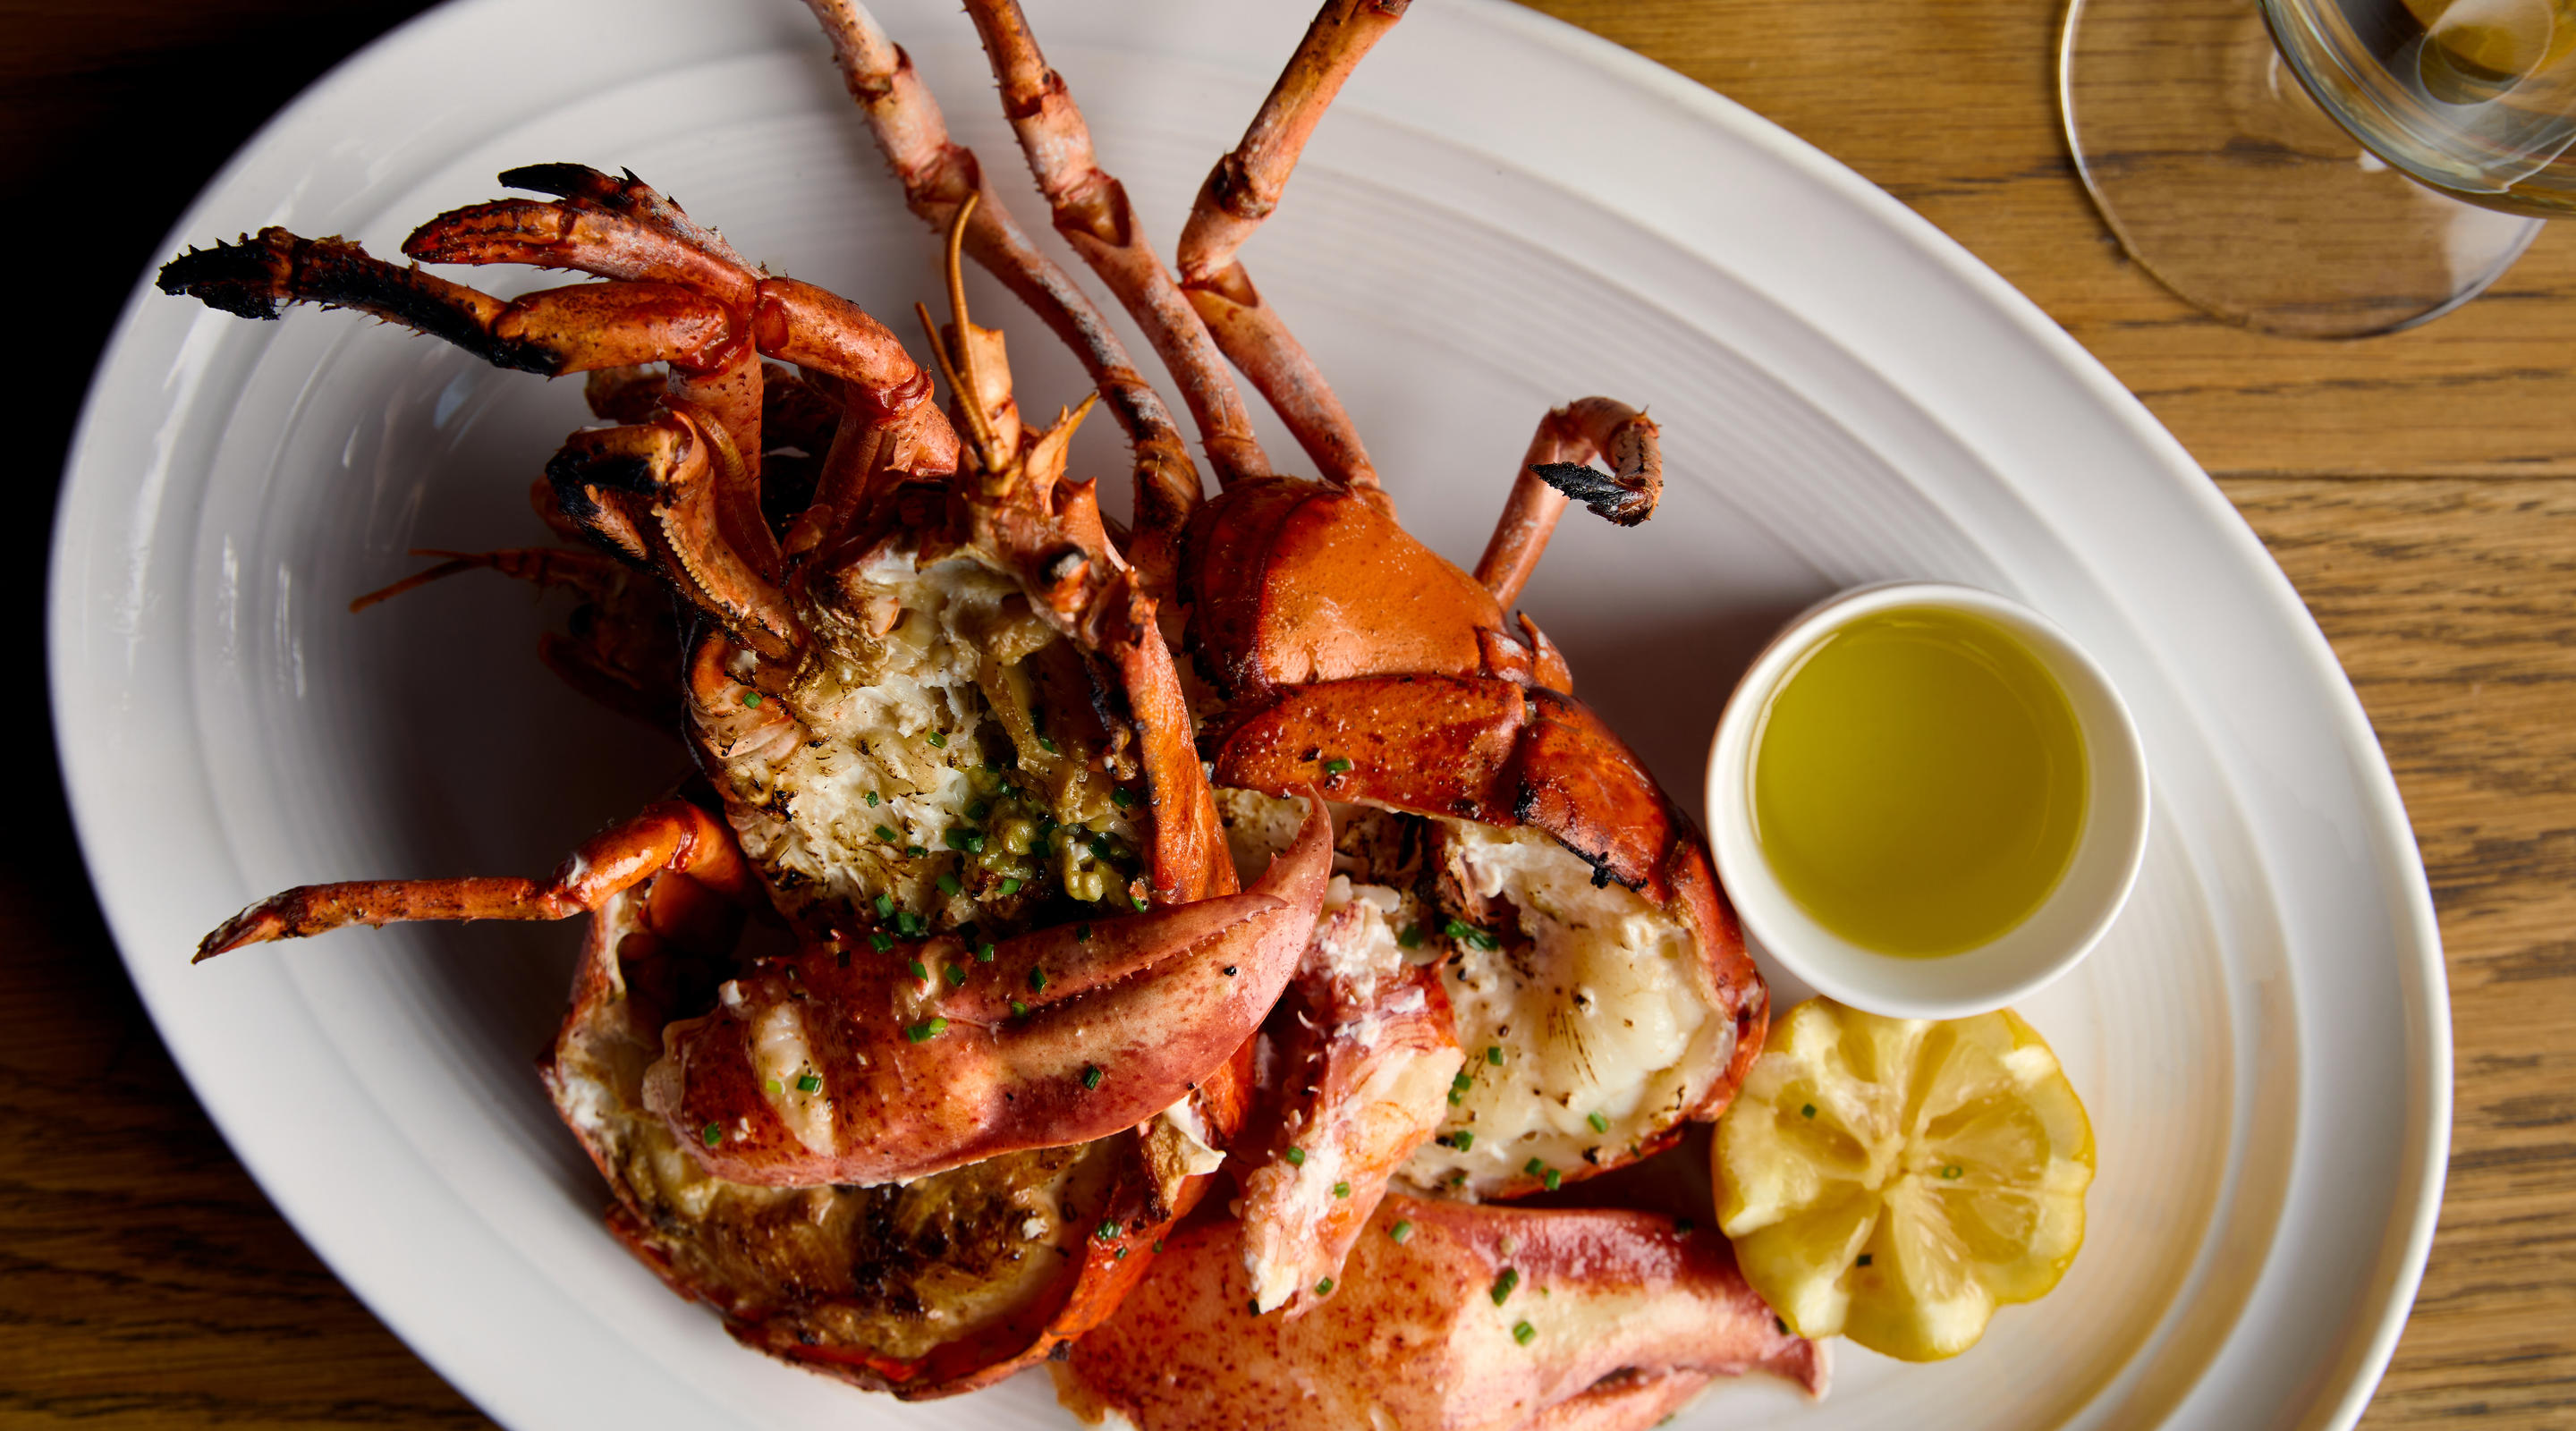 Pan-roasted lobster with butter and lemon.